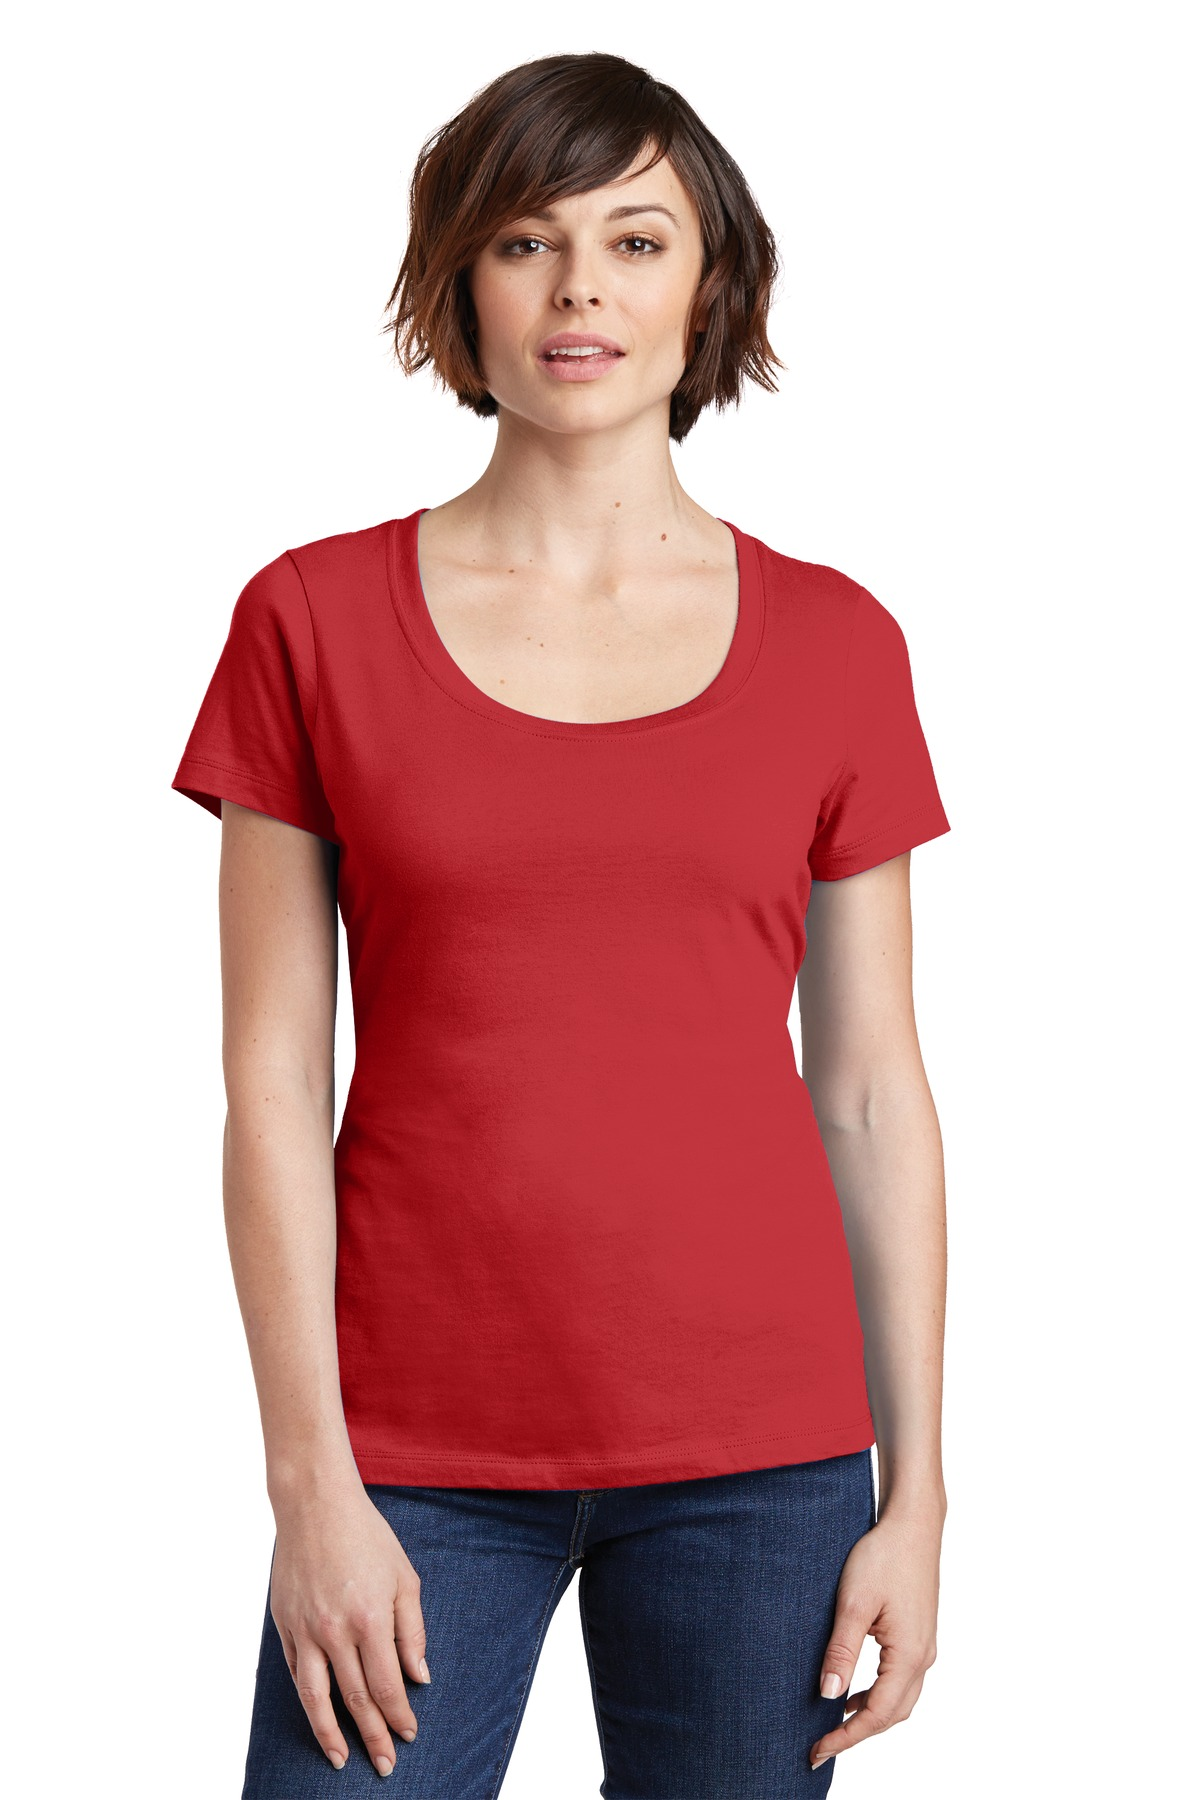 District Made  Ladies Perfect Weight  DM106L - Scoop Tee